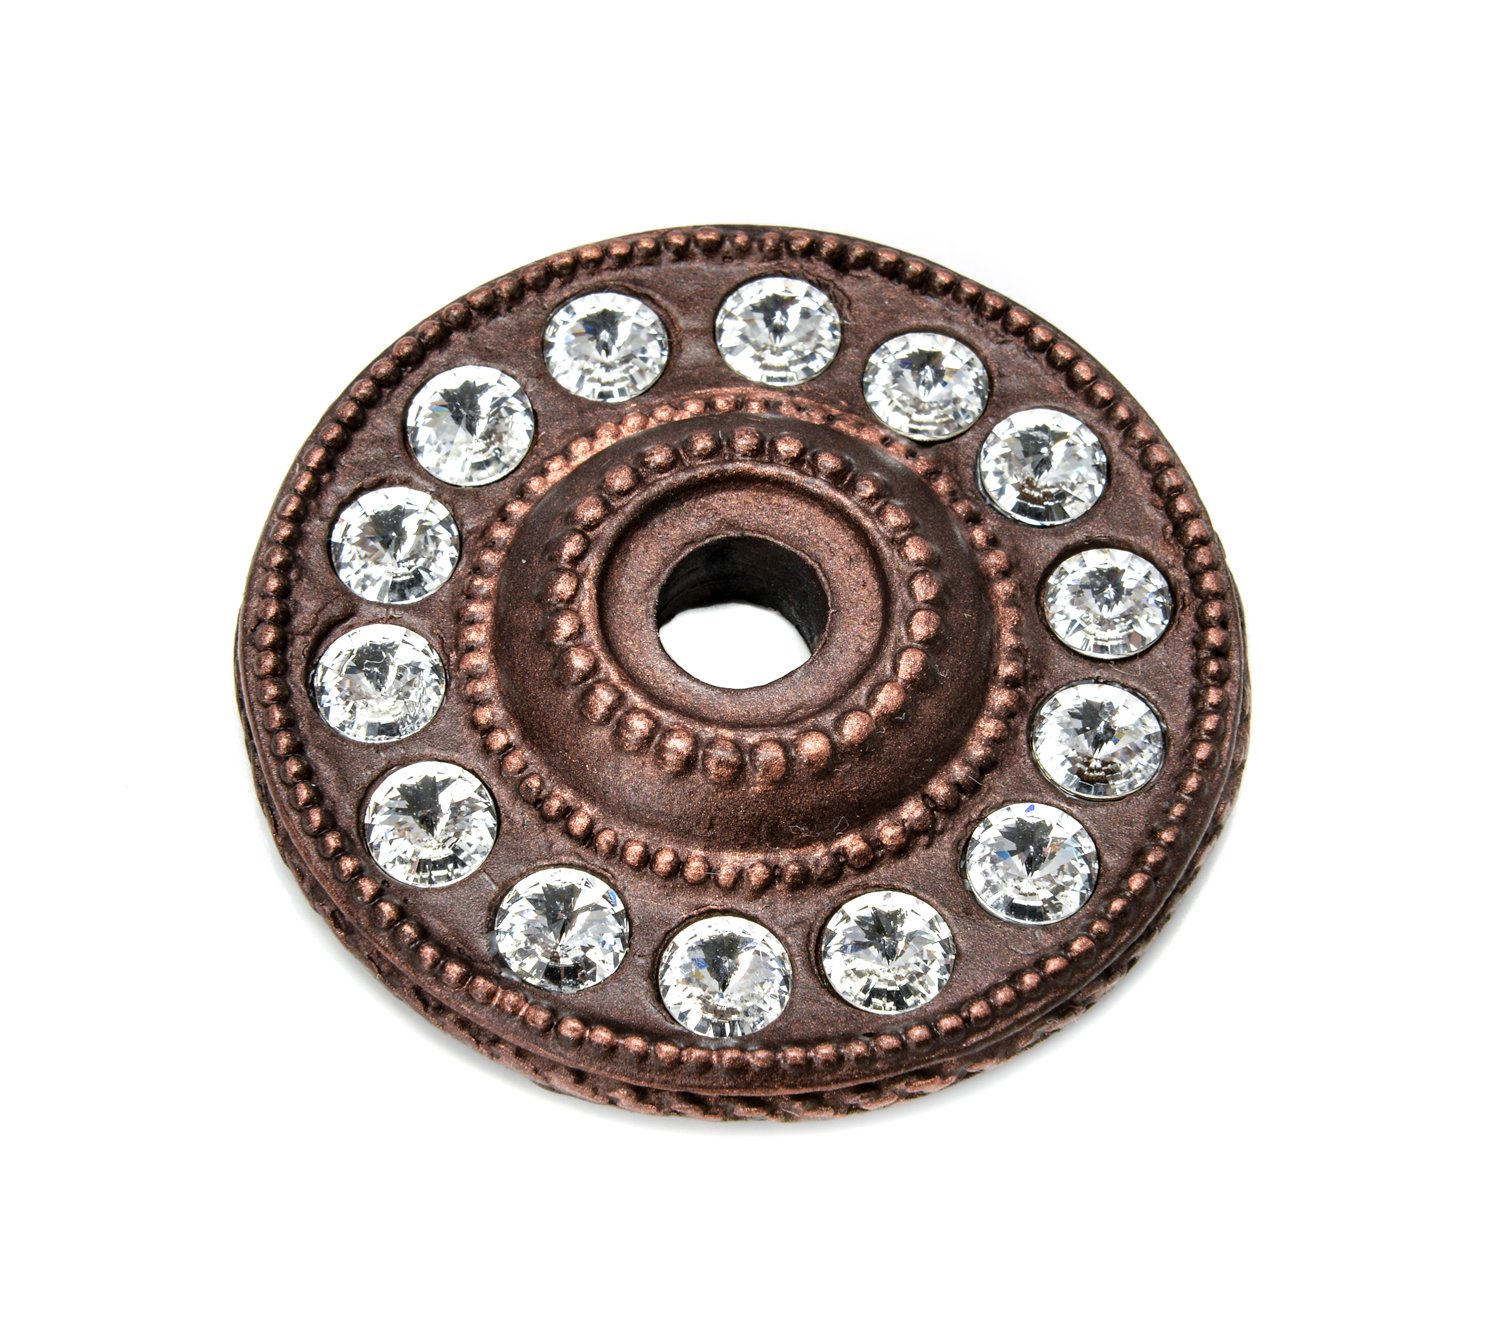 Carpe Diem Hardware Carpe Diem 883-22C Cache' Large round escutcheon with swarovski elements Oil Rubbed Bronze Oil Rubbed Bronze by Carpe Diem Hardware